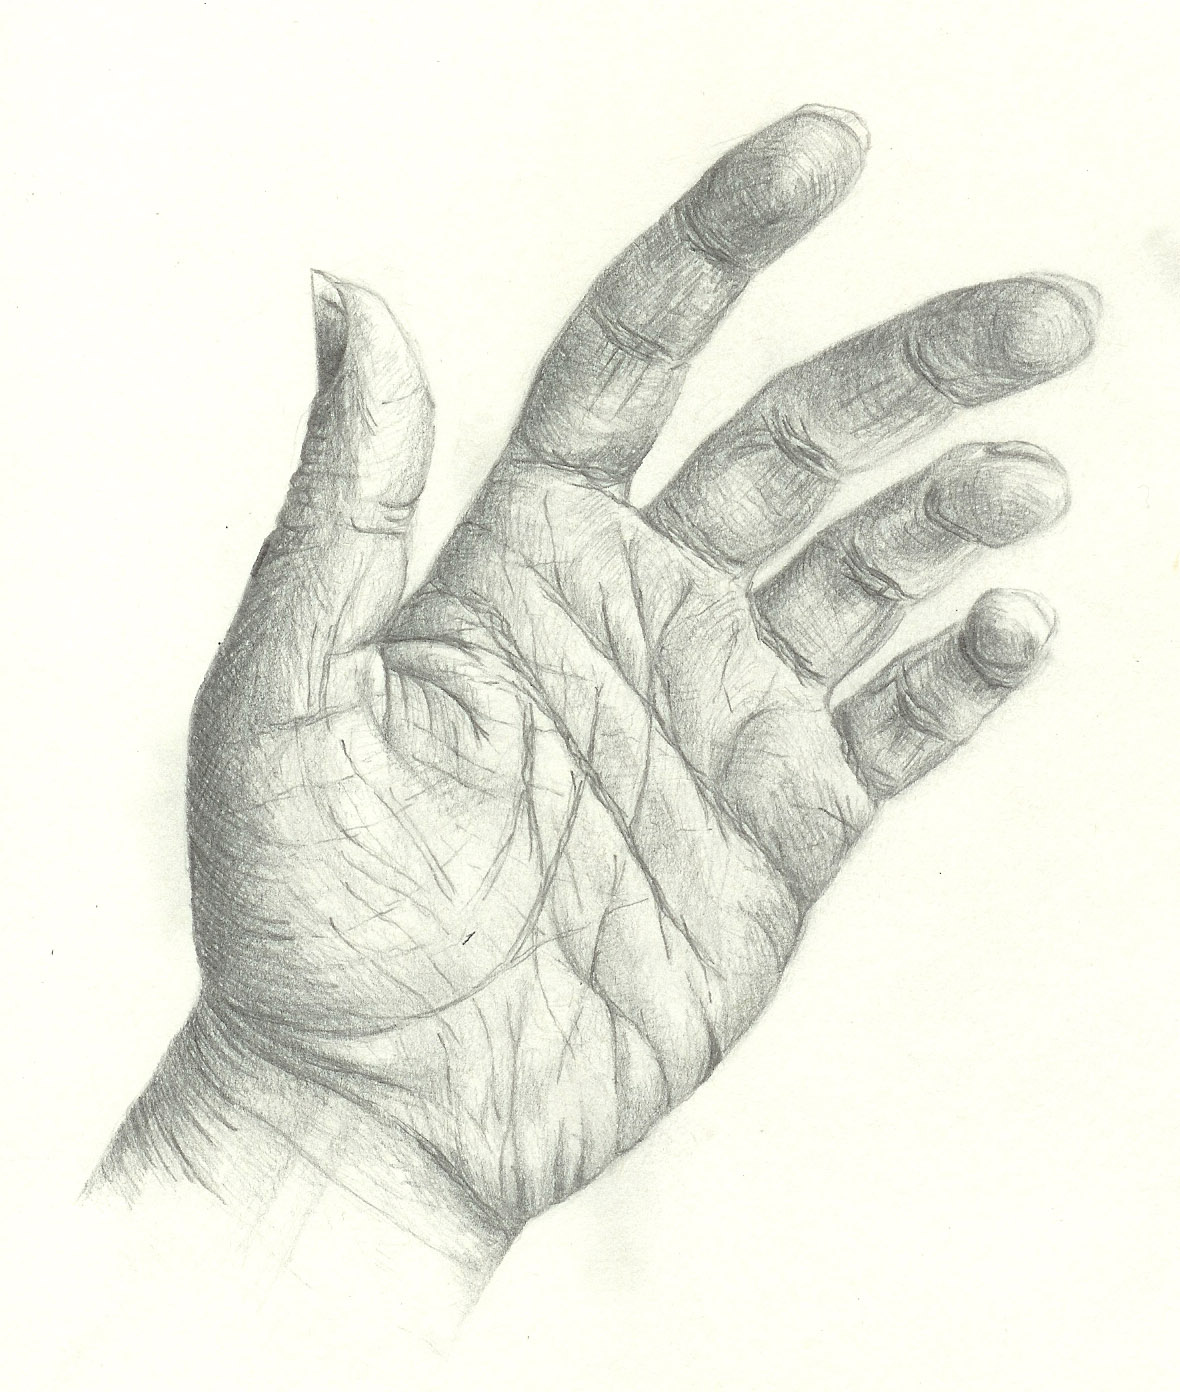 Inspiring Young Artists: Observational drawing: hand